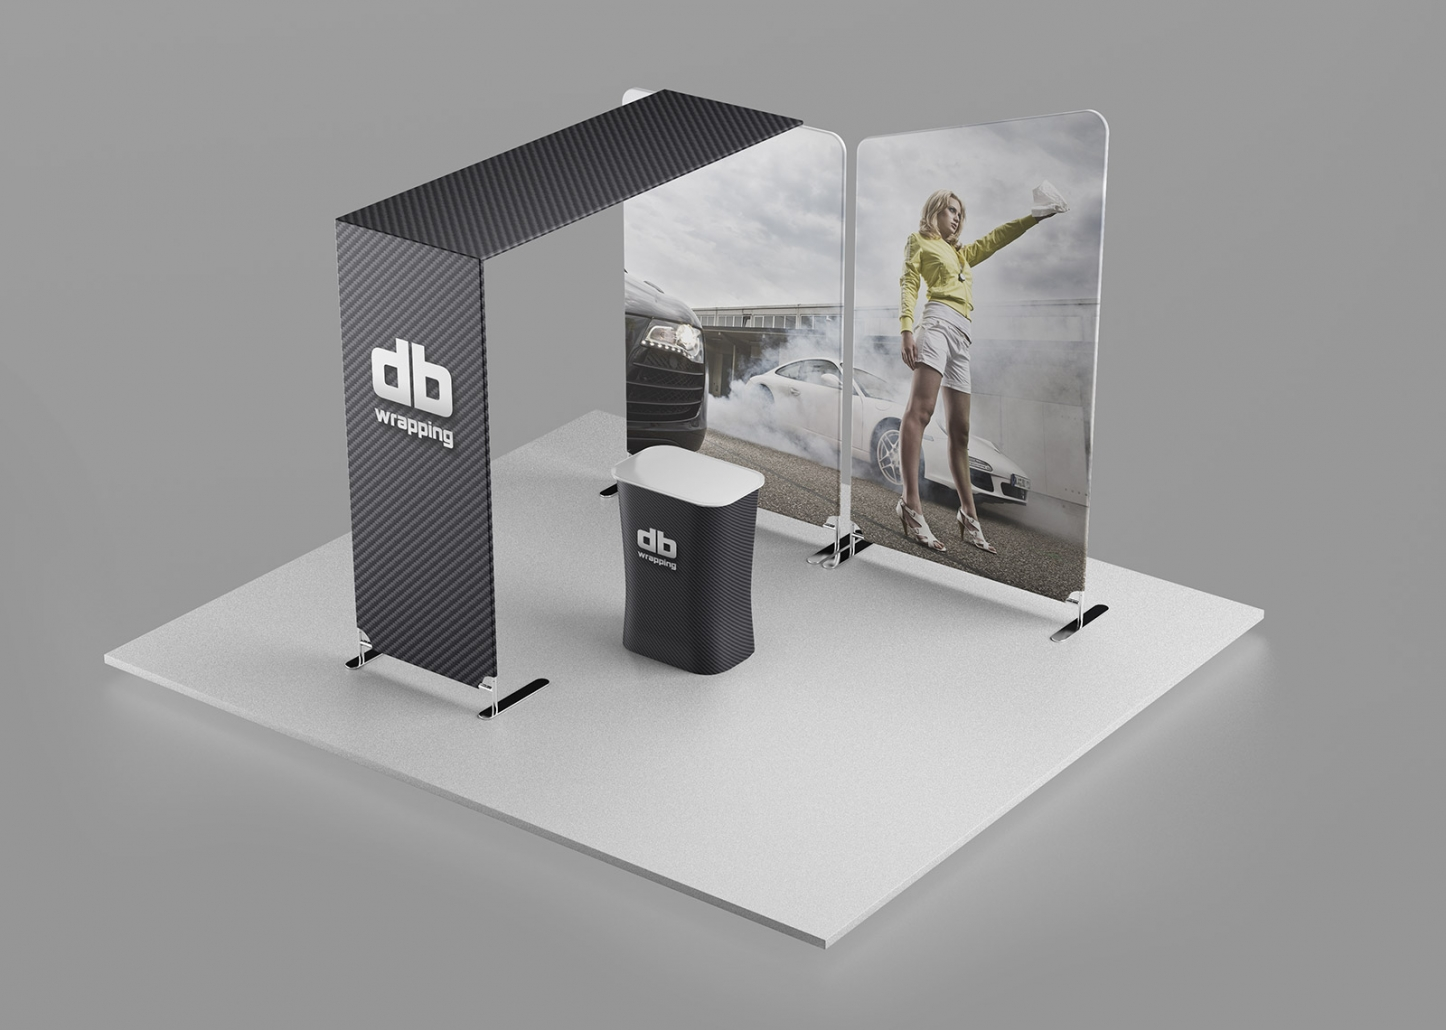 Messestand für db wrapping